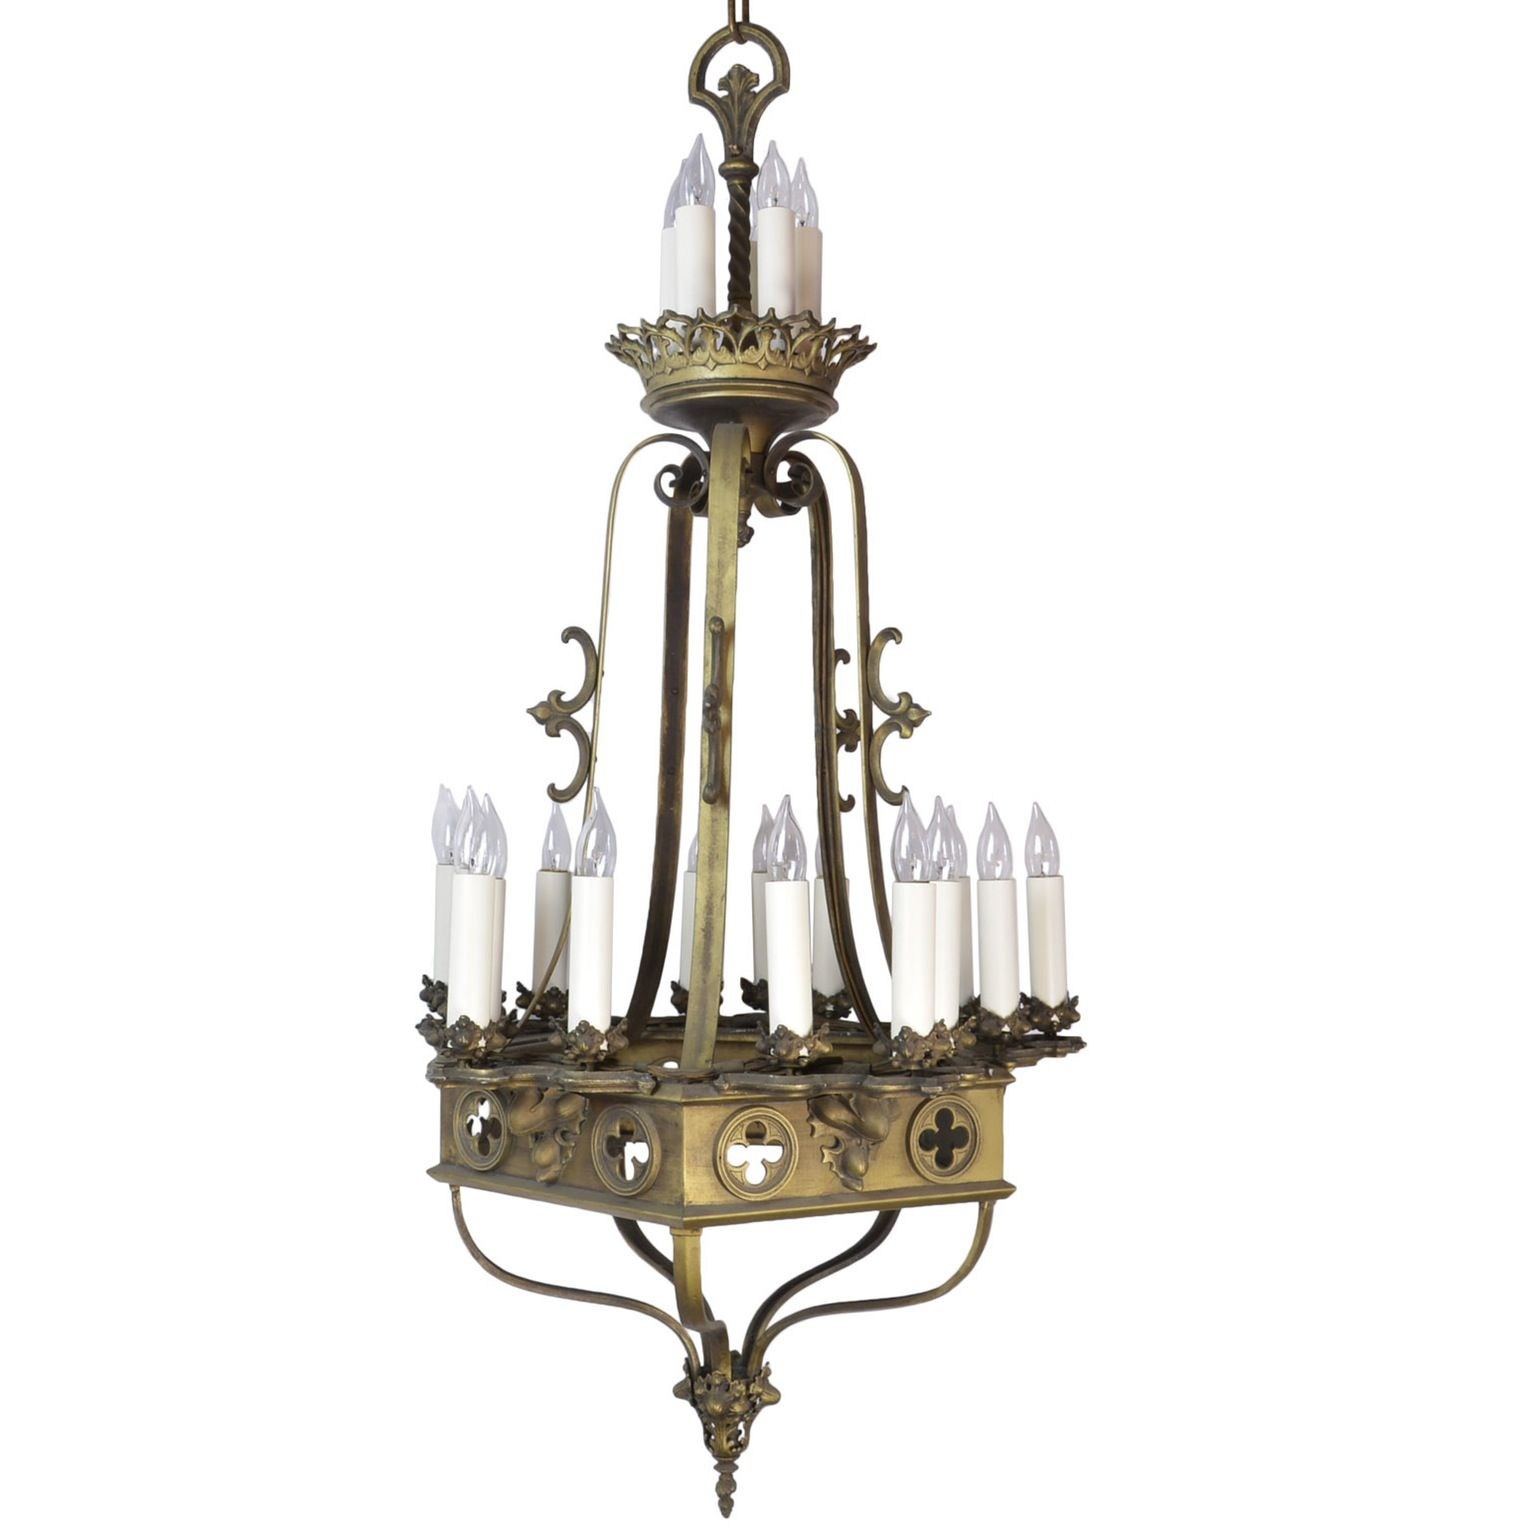 LARGE SCALE 1920s GOTHIC 20 CANDLE CHANDELIER